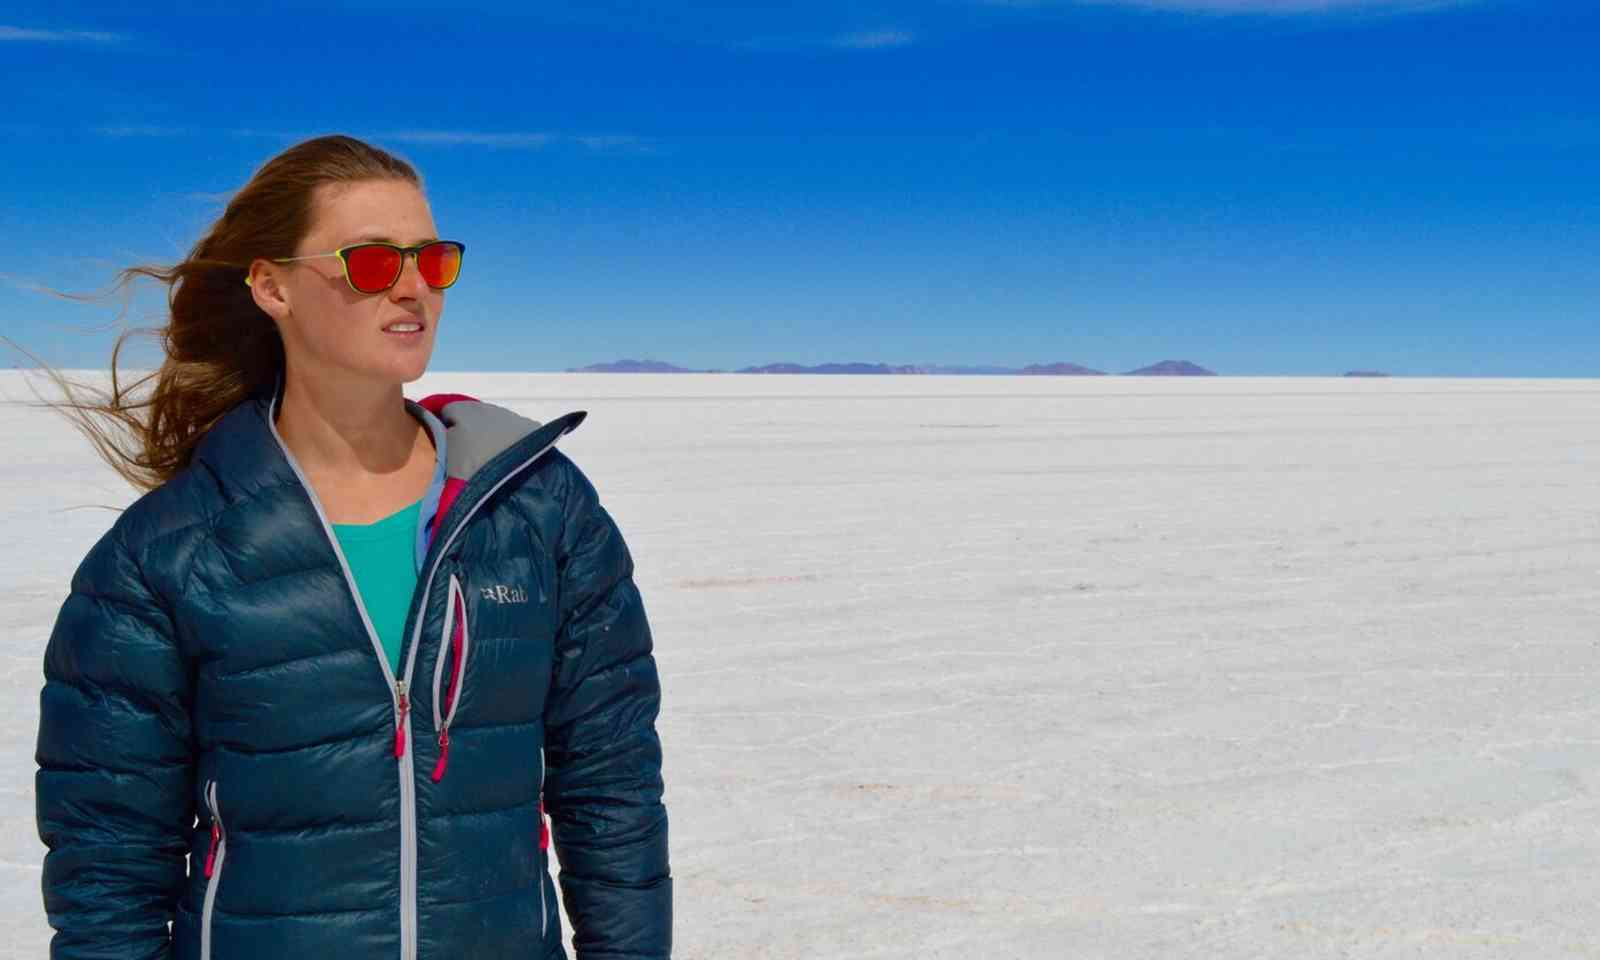 Down jacket. Bolivian Salt Flats (Laura Bingham)